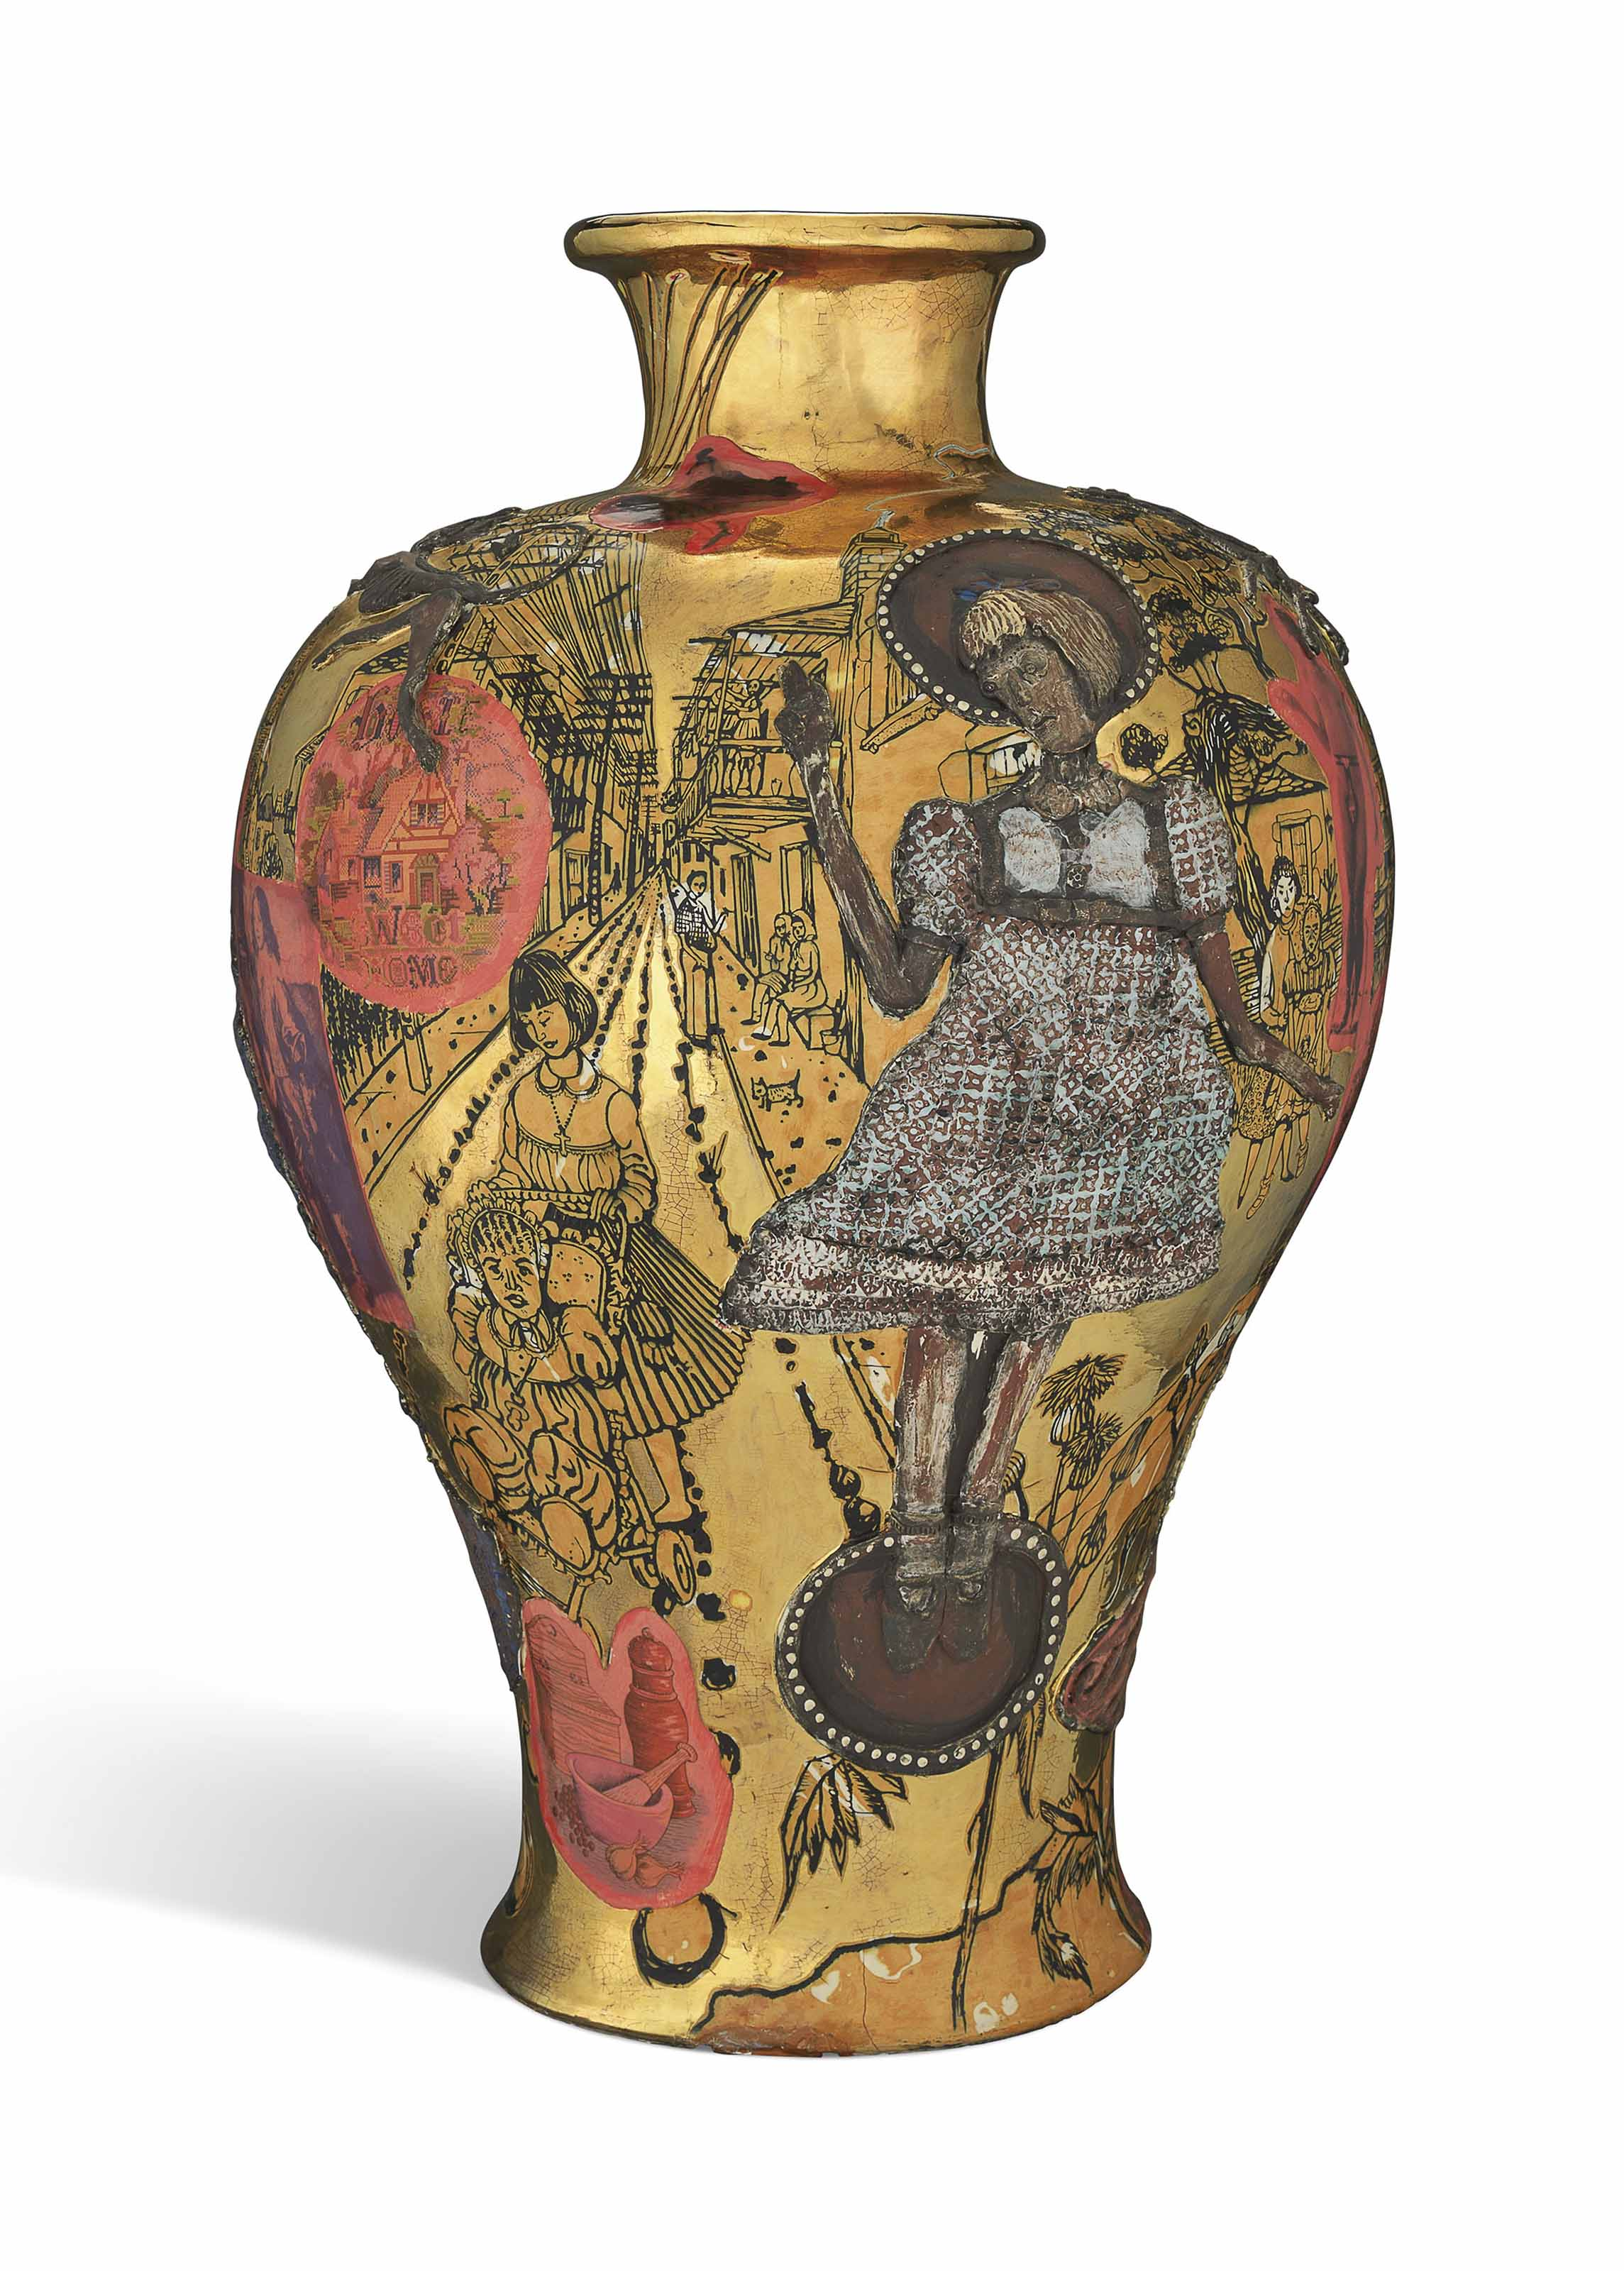 Grayson perry b 1960 saint claire 37 wanks across northern grayson perry b 1960 reviewsmspy